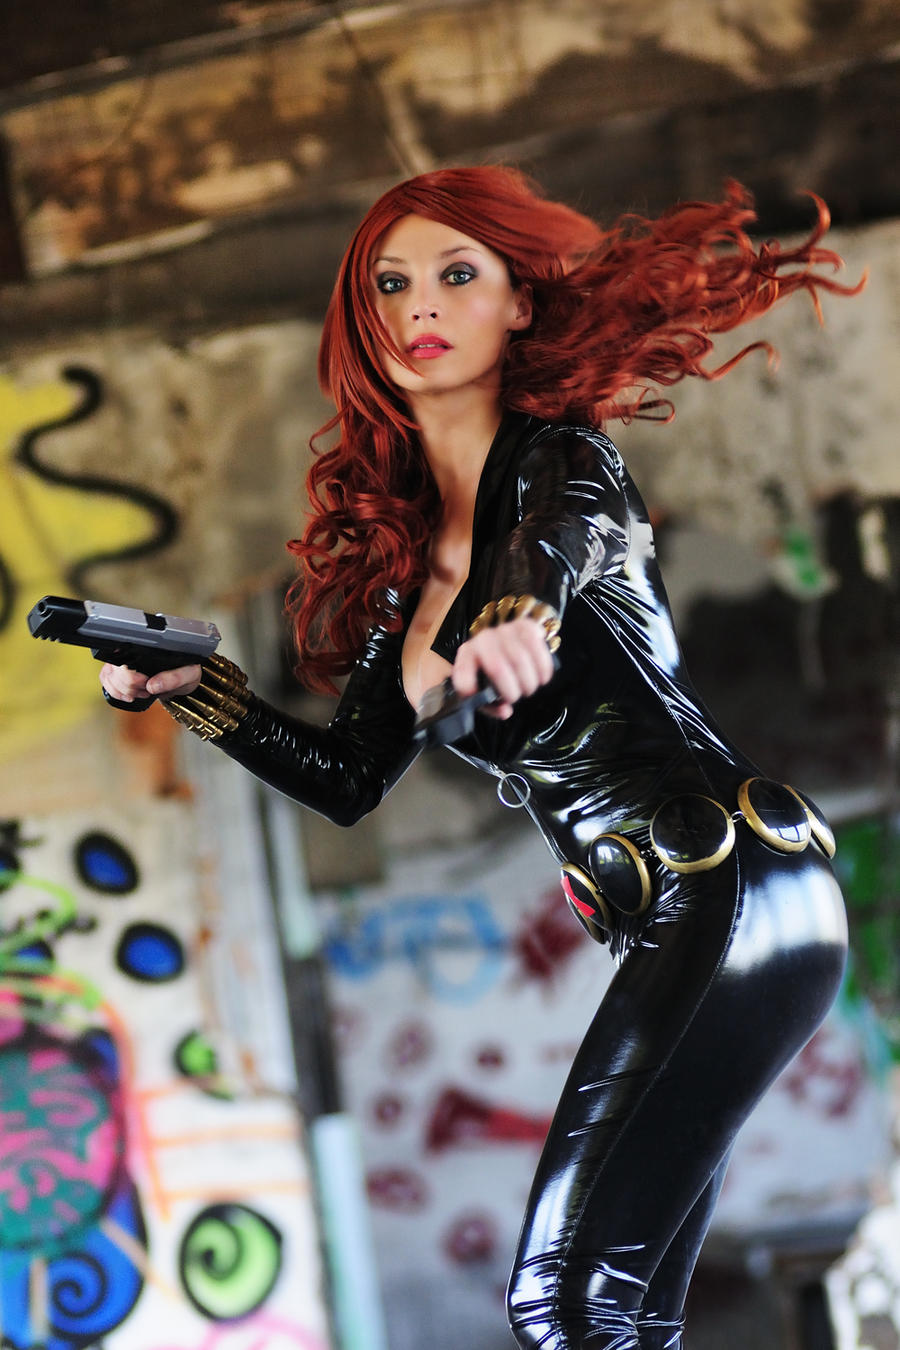 Black Widow in action by Giorgiacosplay